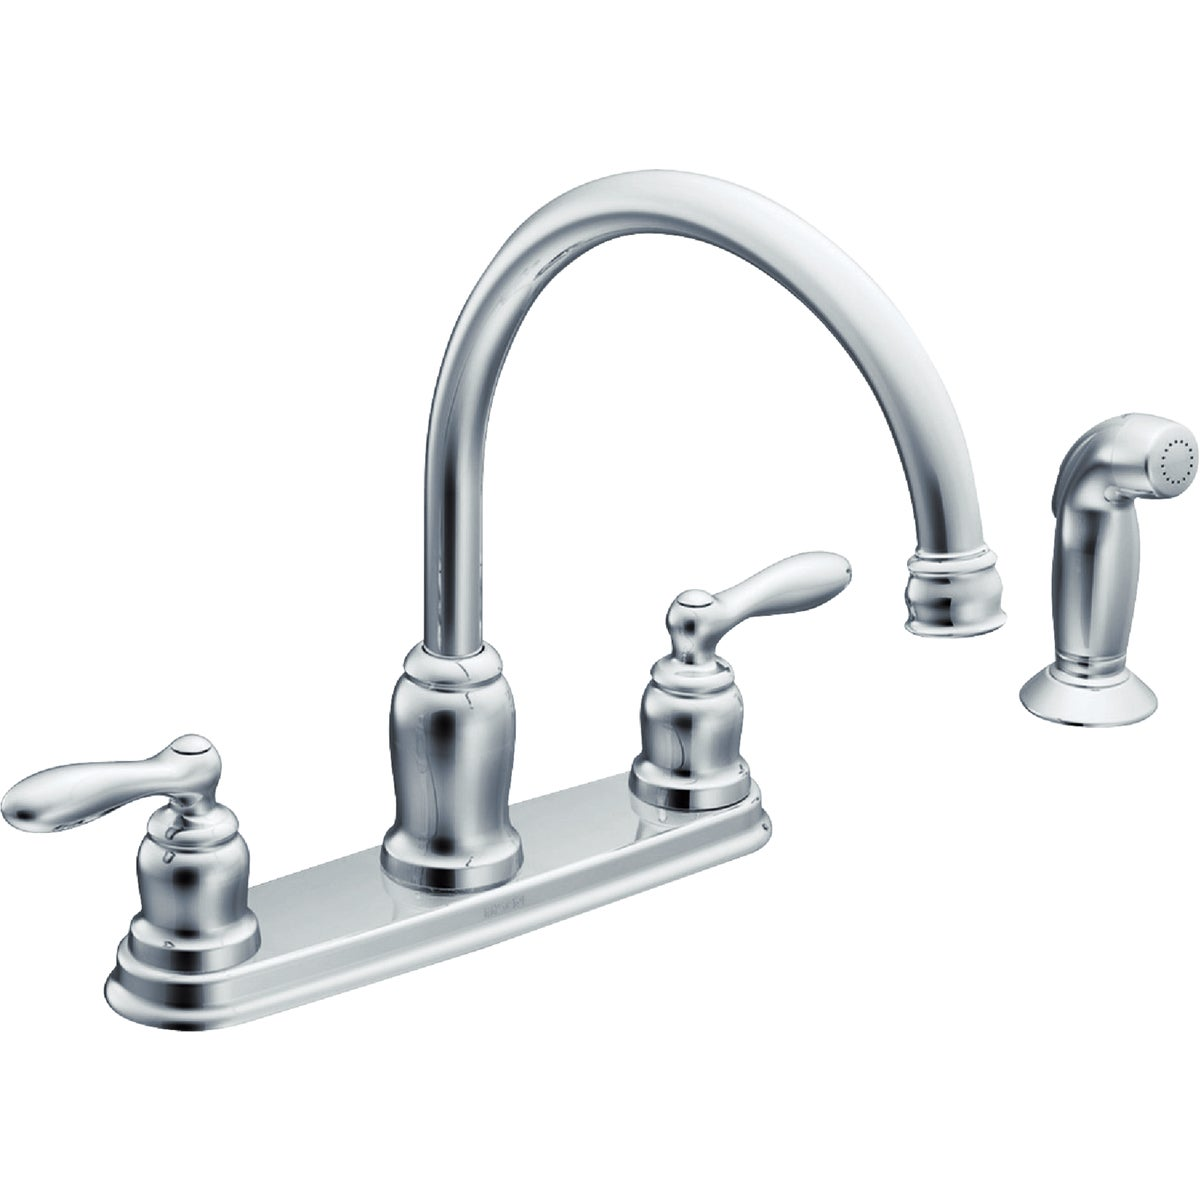 2H CH KIT FAUCET W/SPRY